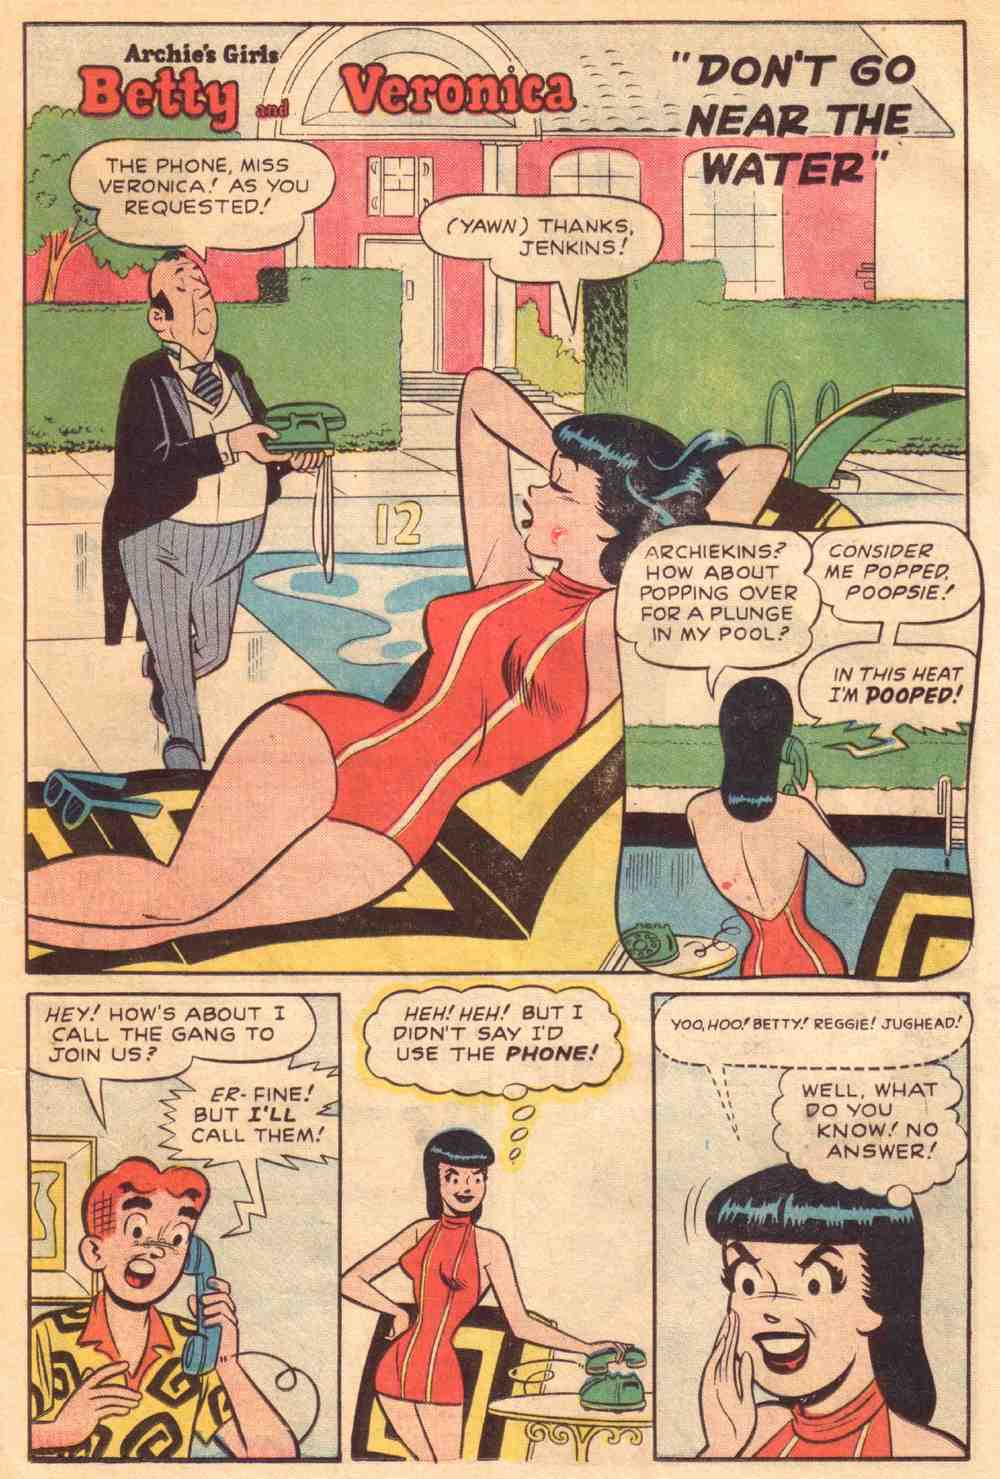 Read online Archie's Girls Betty and Veronica comic -  Issue #39 - 13